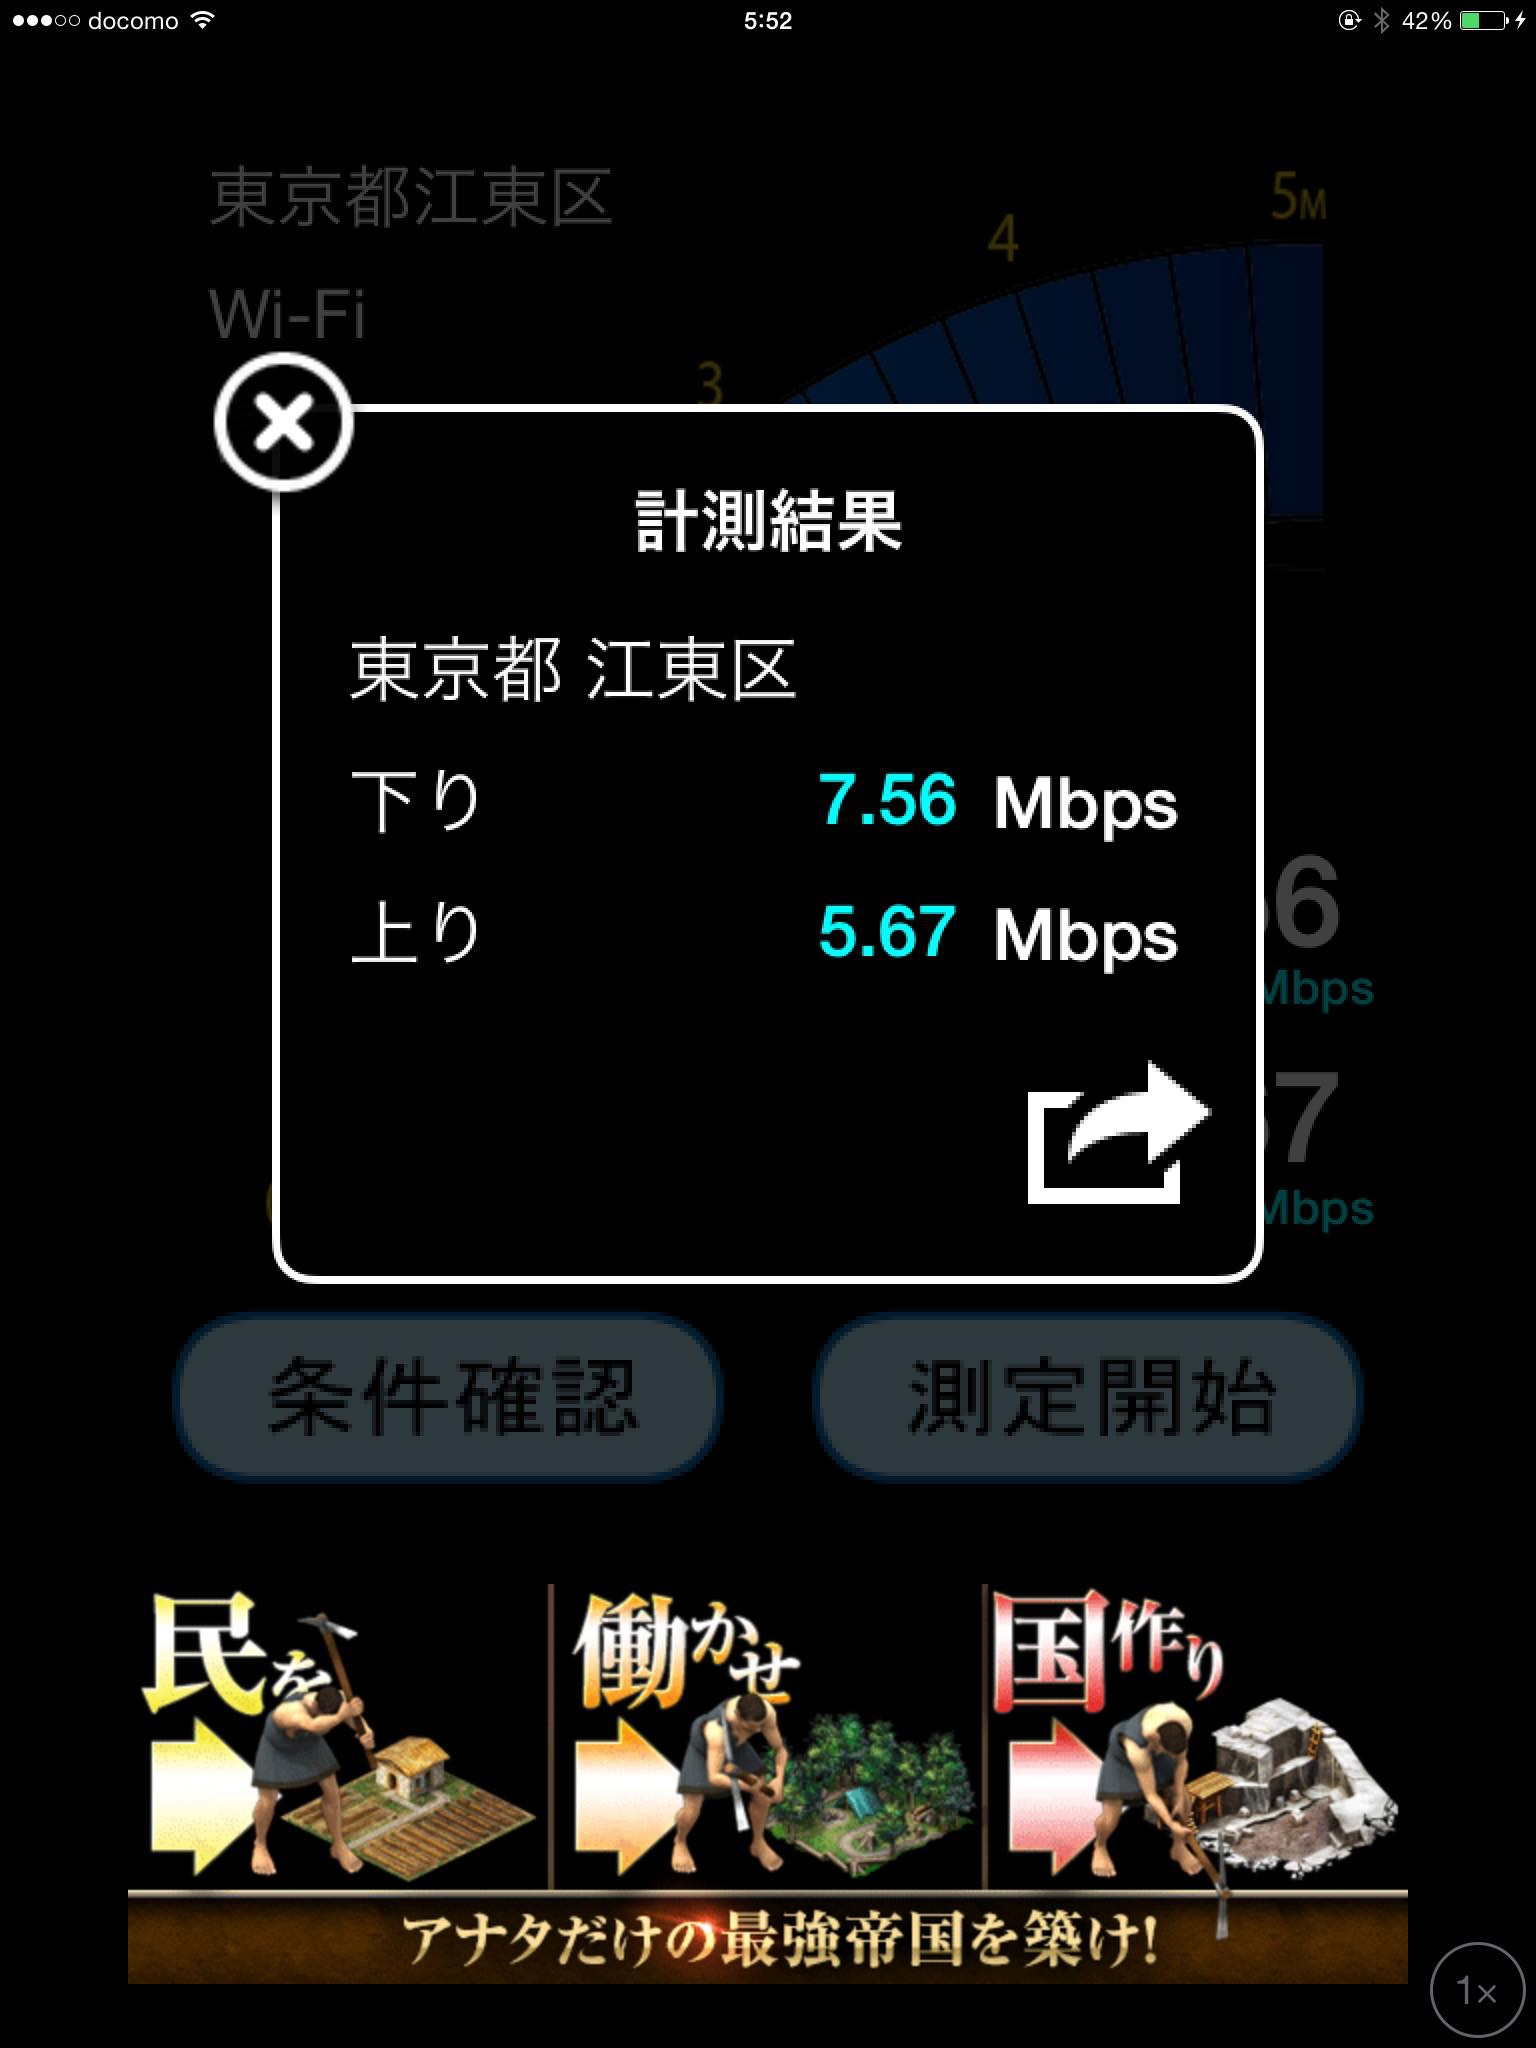 wimax-review4